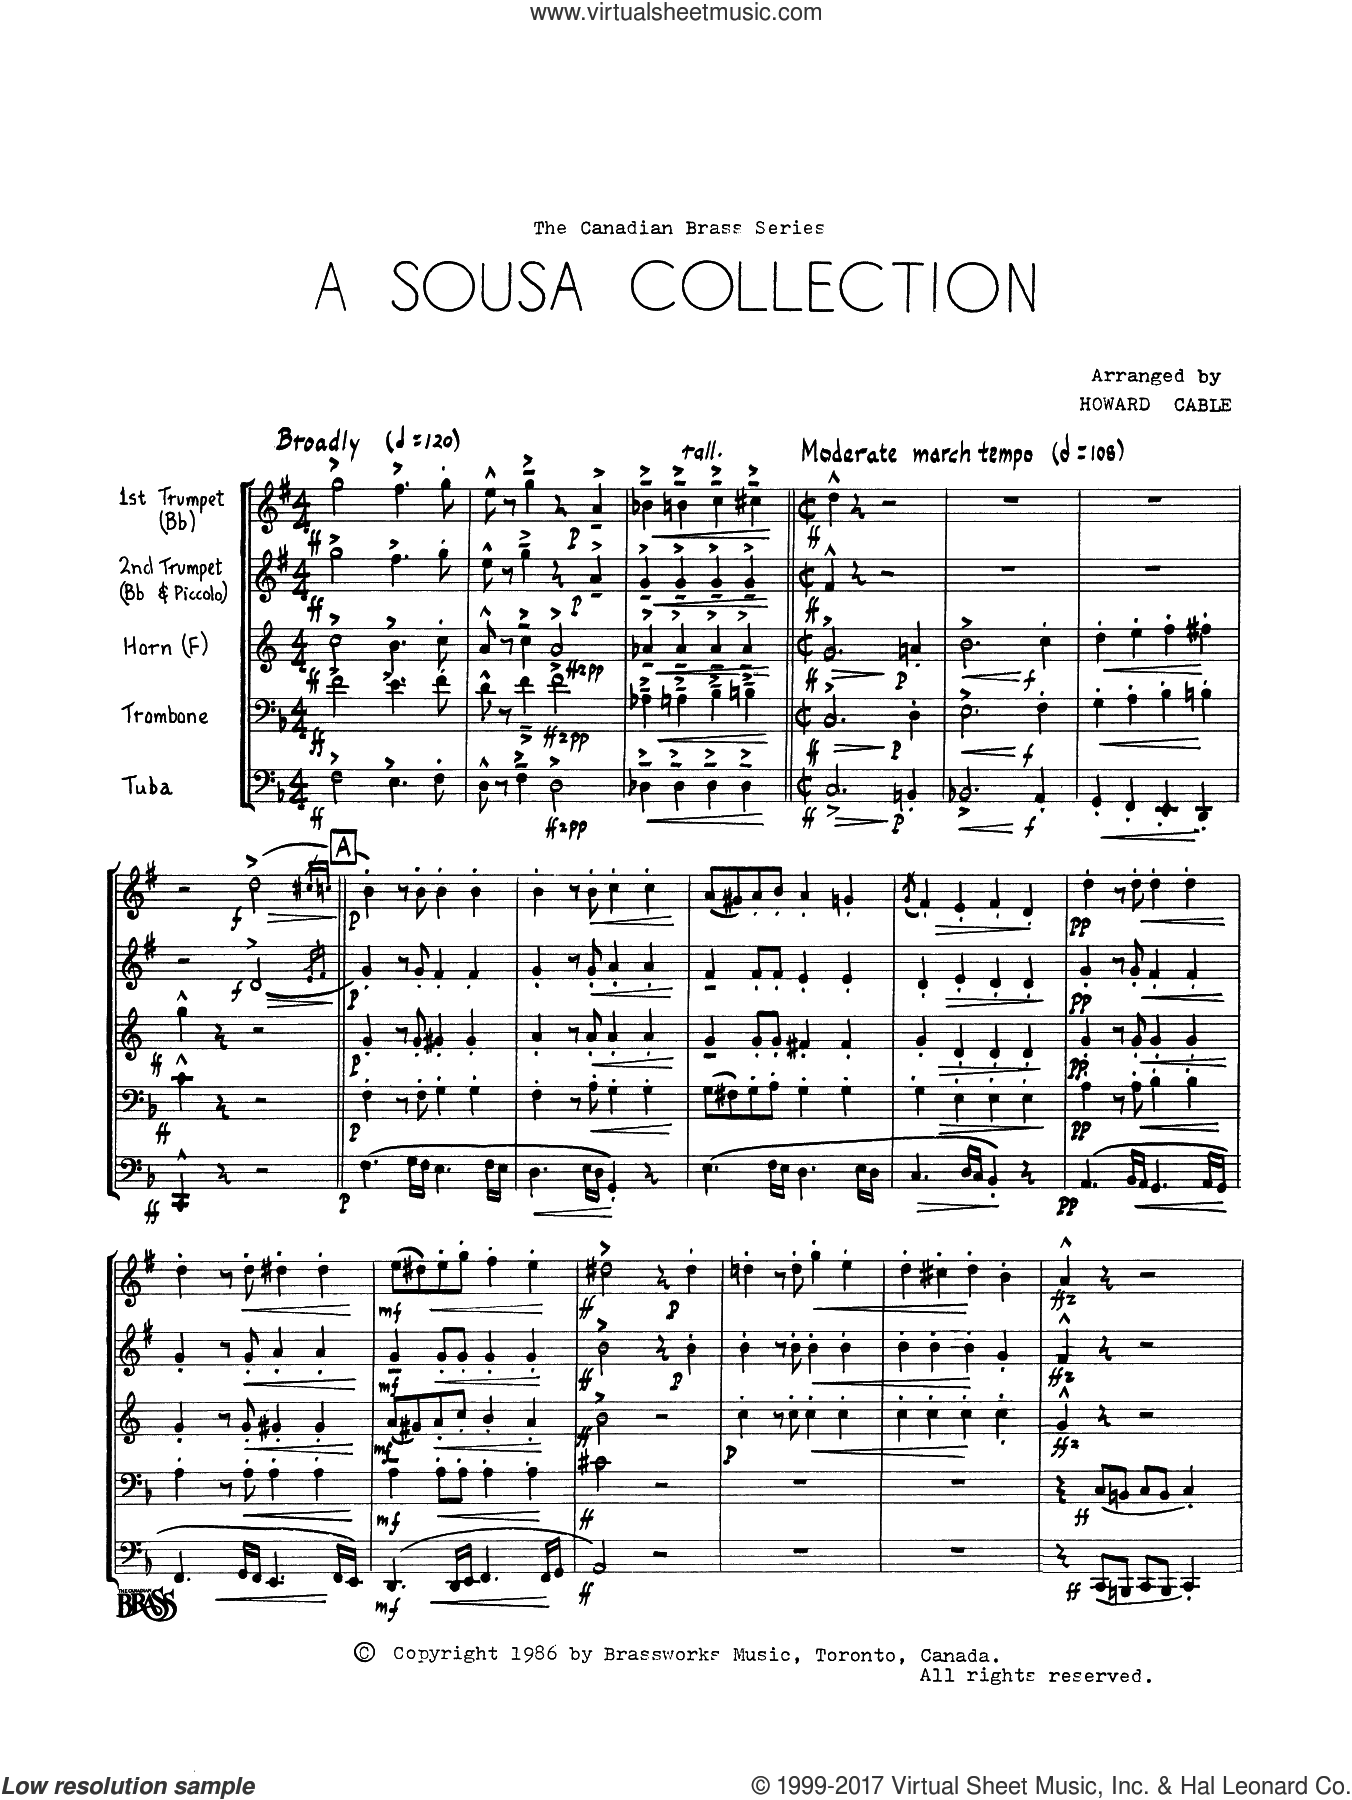 A Sousa Collection (COMPLETE) sheet music for brass quintet by John Philip Sousa and Howard Cable, intermediate skill level